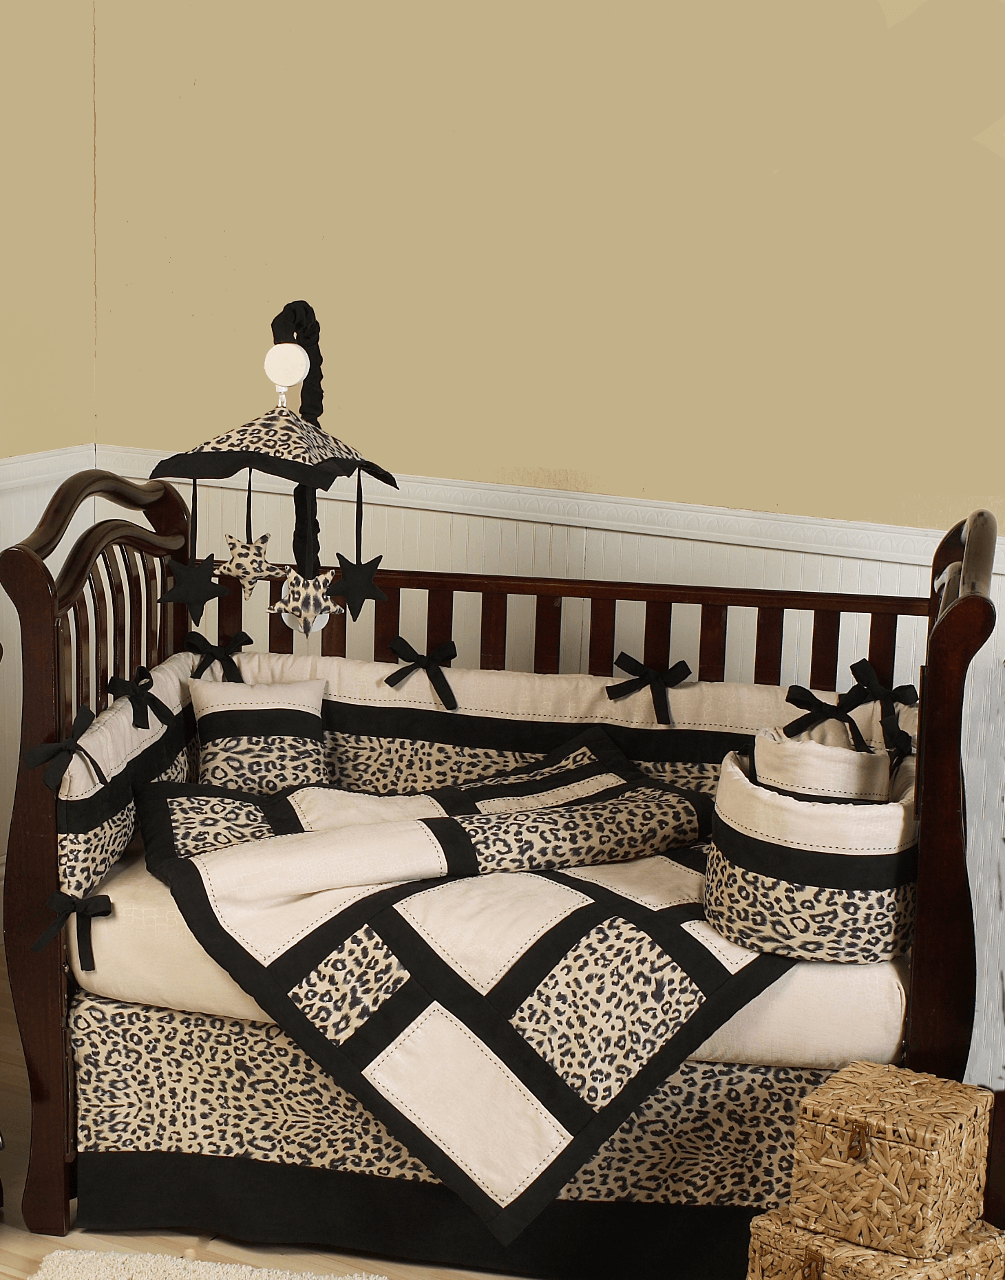 Leopard Baby Bedding Cheetah Print Crib And Nursery Decor